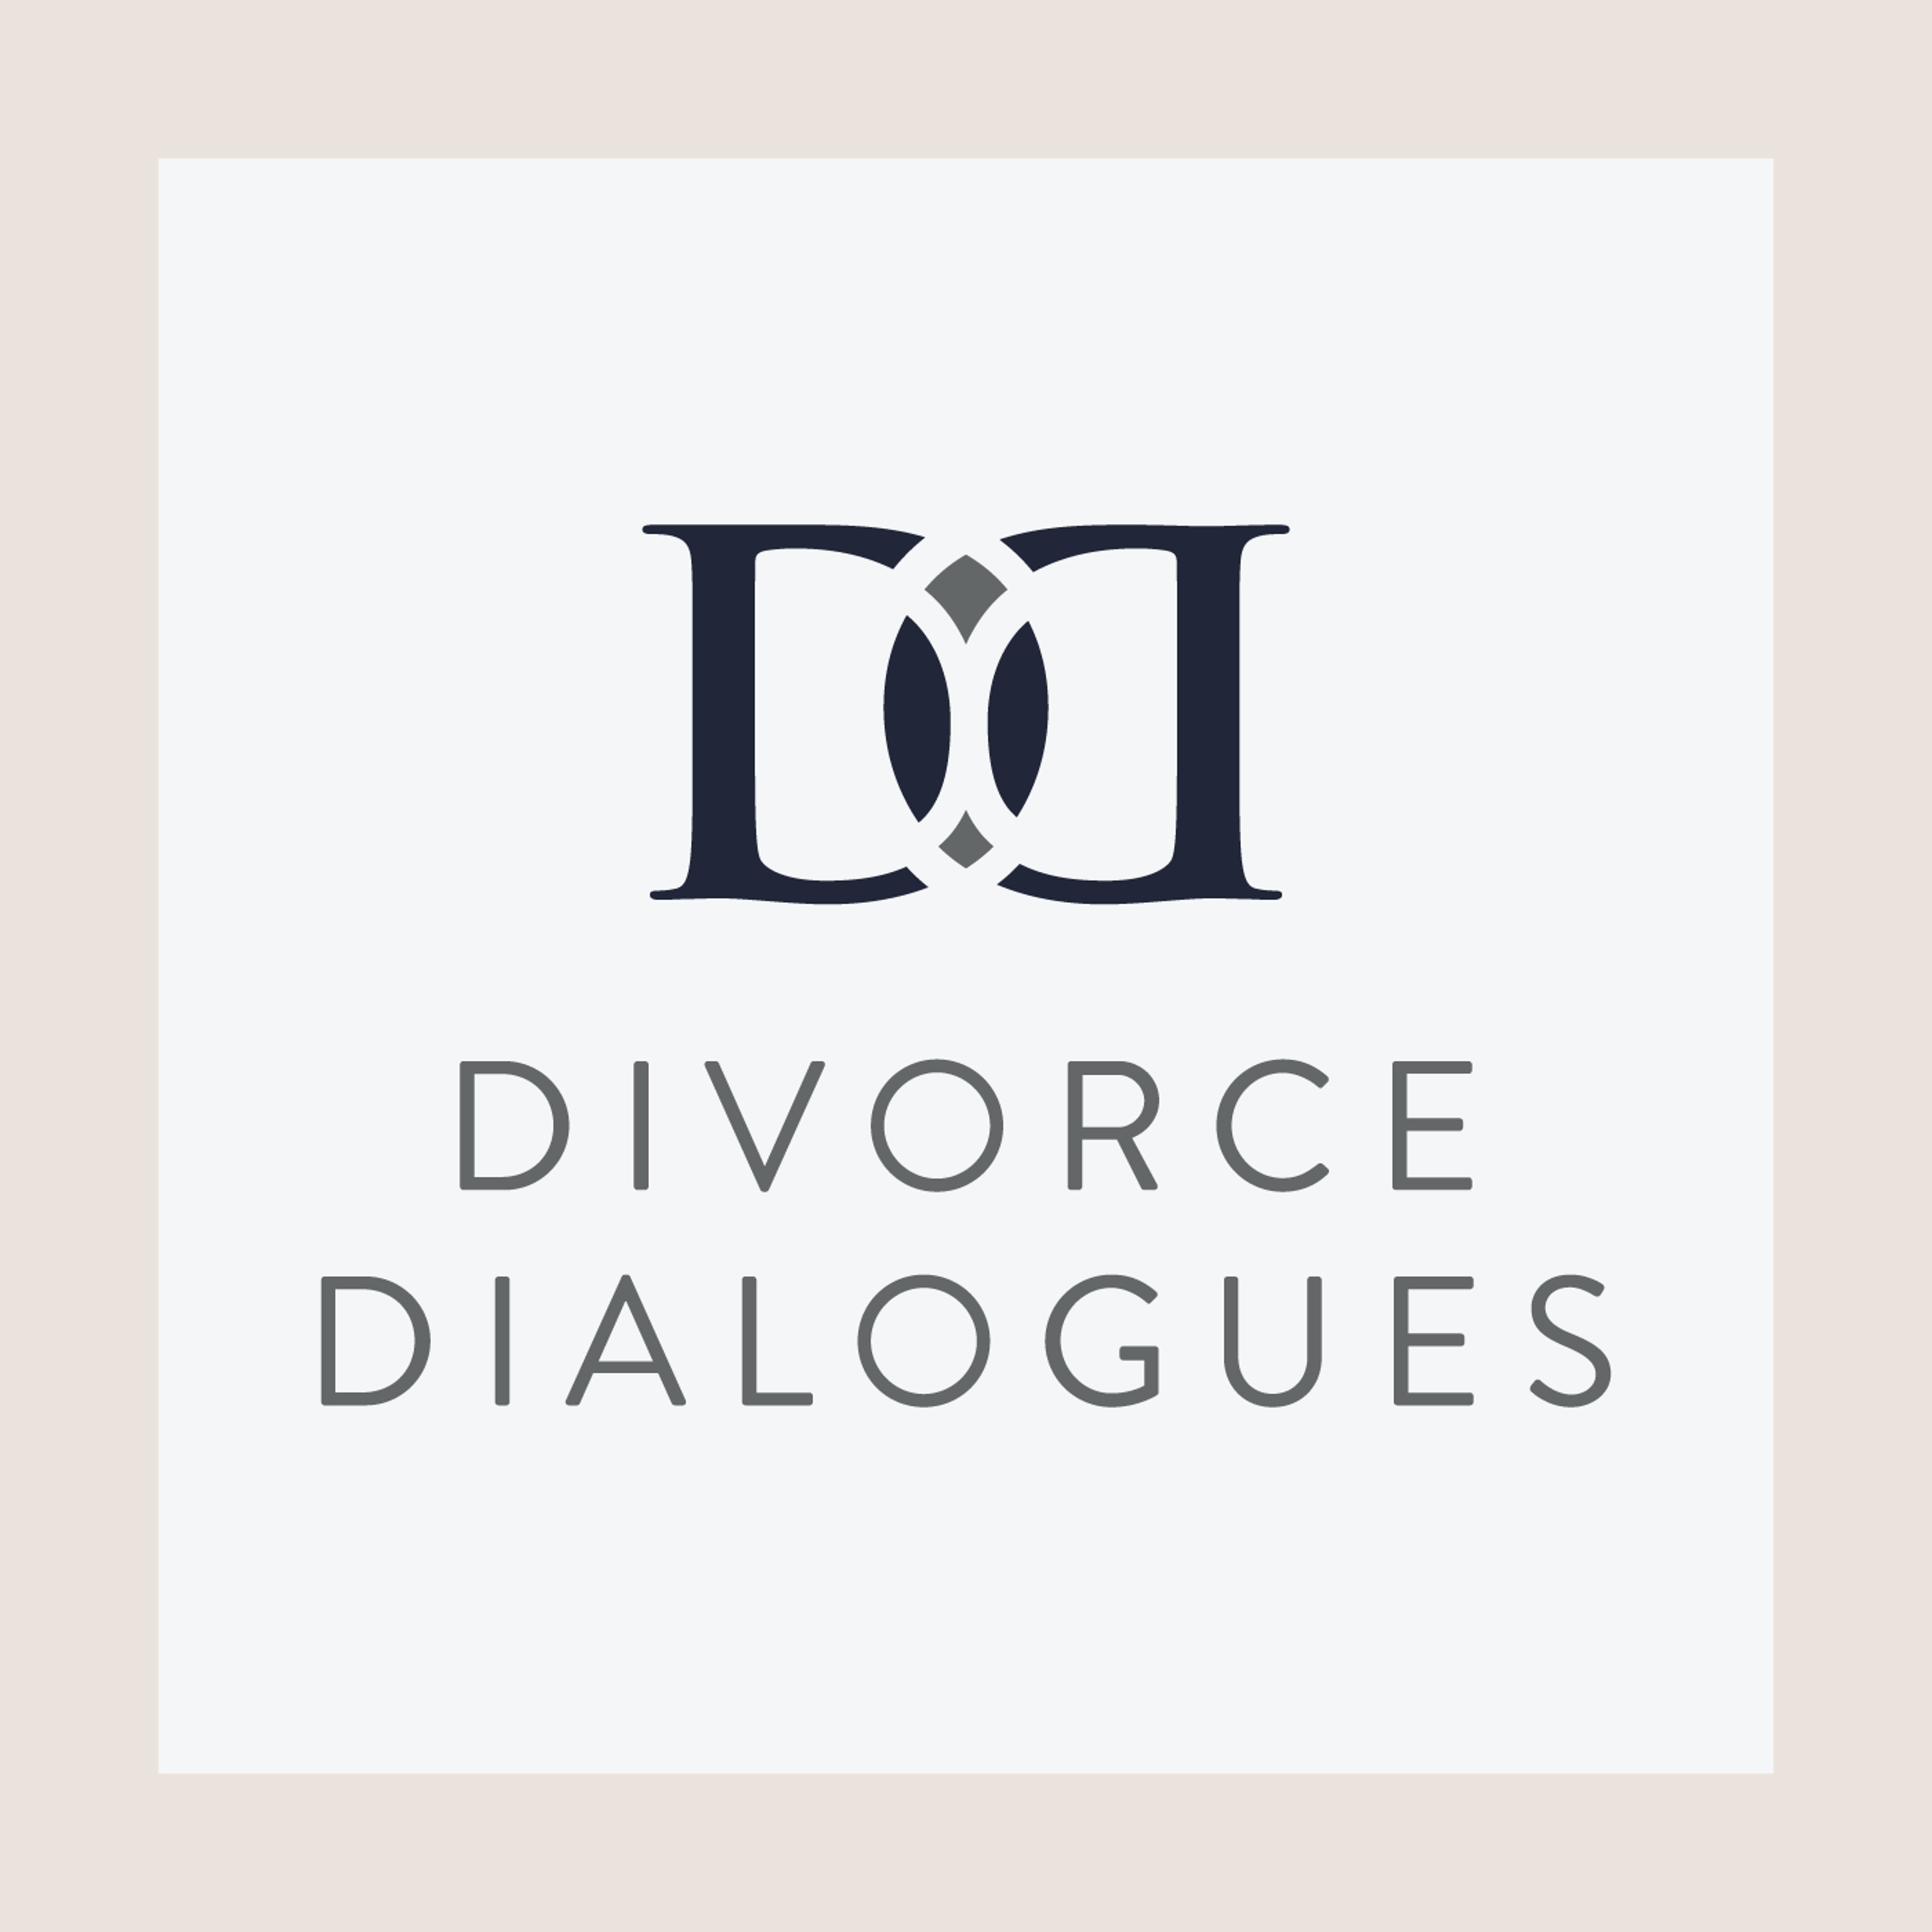 Divorce Dialogues - Reclaiming a Sense of Control in the Divorce Process with Sonia Queralt